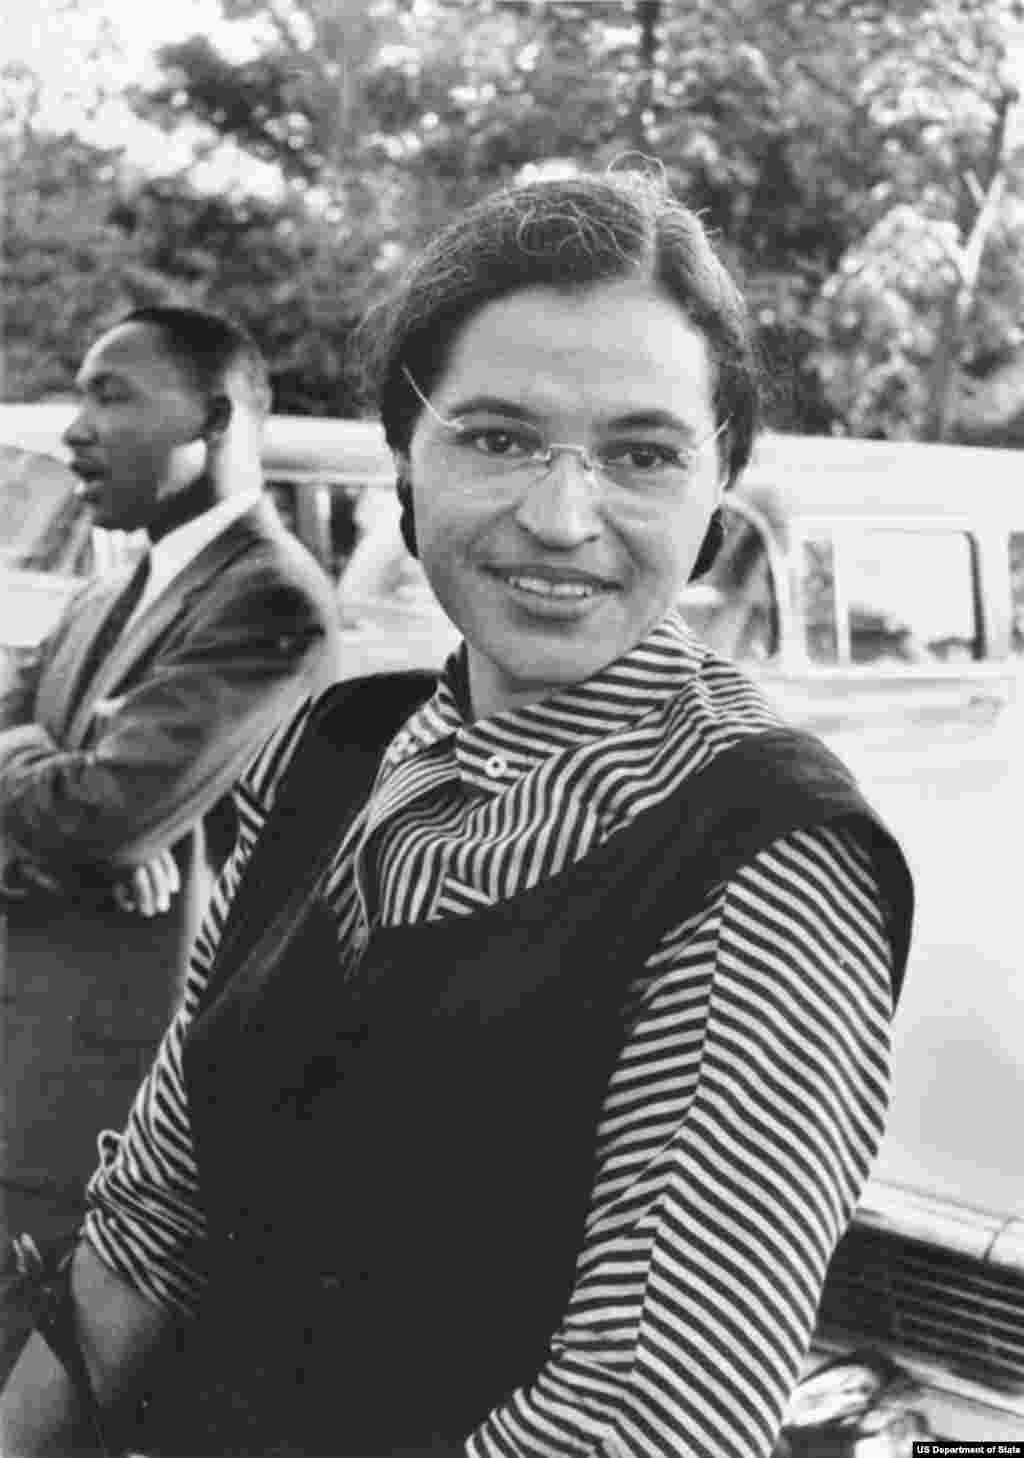 Civil rights activist Rosa Parks, pictured with Dr. Martin Luther King Jr. in 1955. Parks was arrested for refusing to give up her seat on a bus to a white passenger. Her act of civil disobedience marked the beginning of the Montgomery Bus Boycott, a protest campaign against segregation on public transport in the state of Alabama.